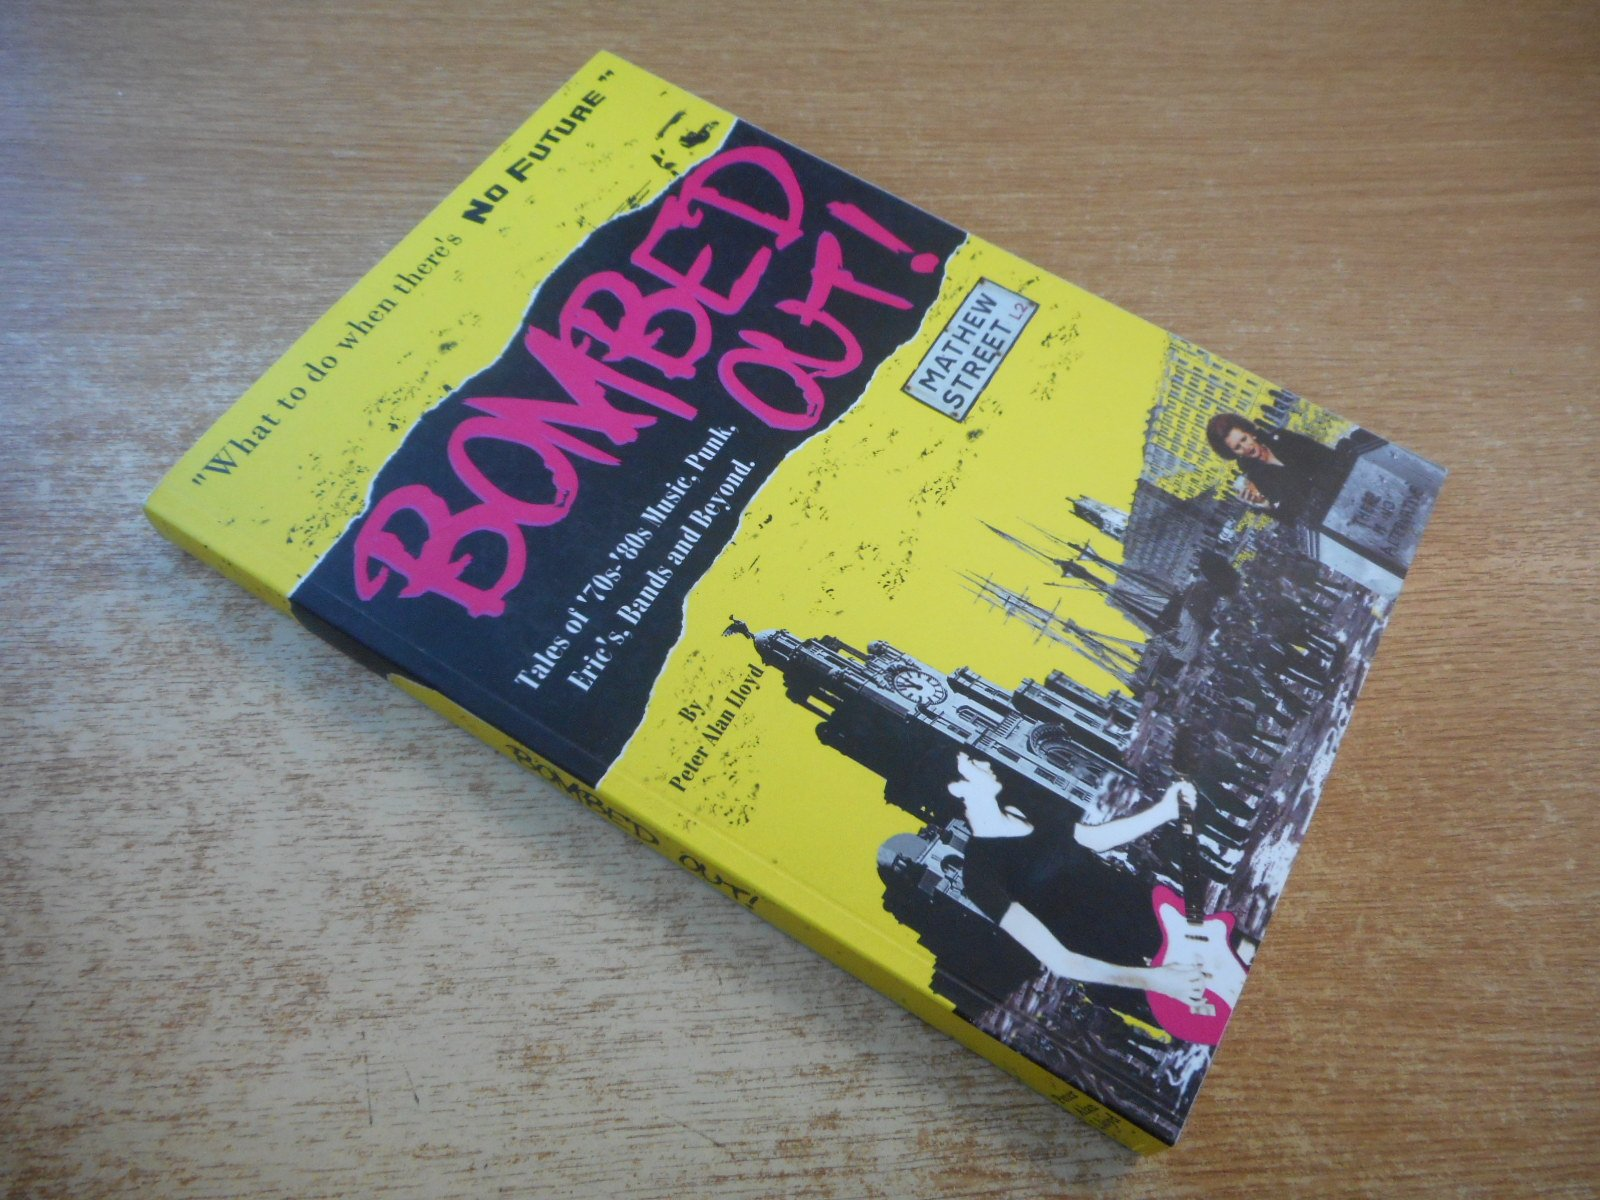 Bombed out!: Tales of '70s-'80s Music, Punk, Eric's, Bands